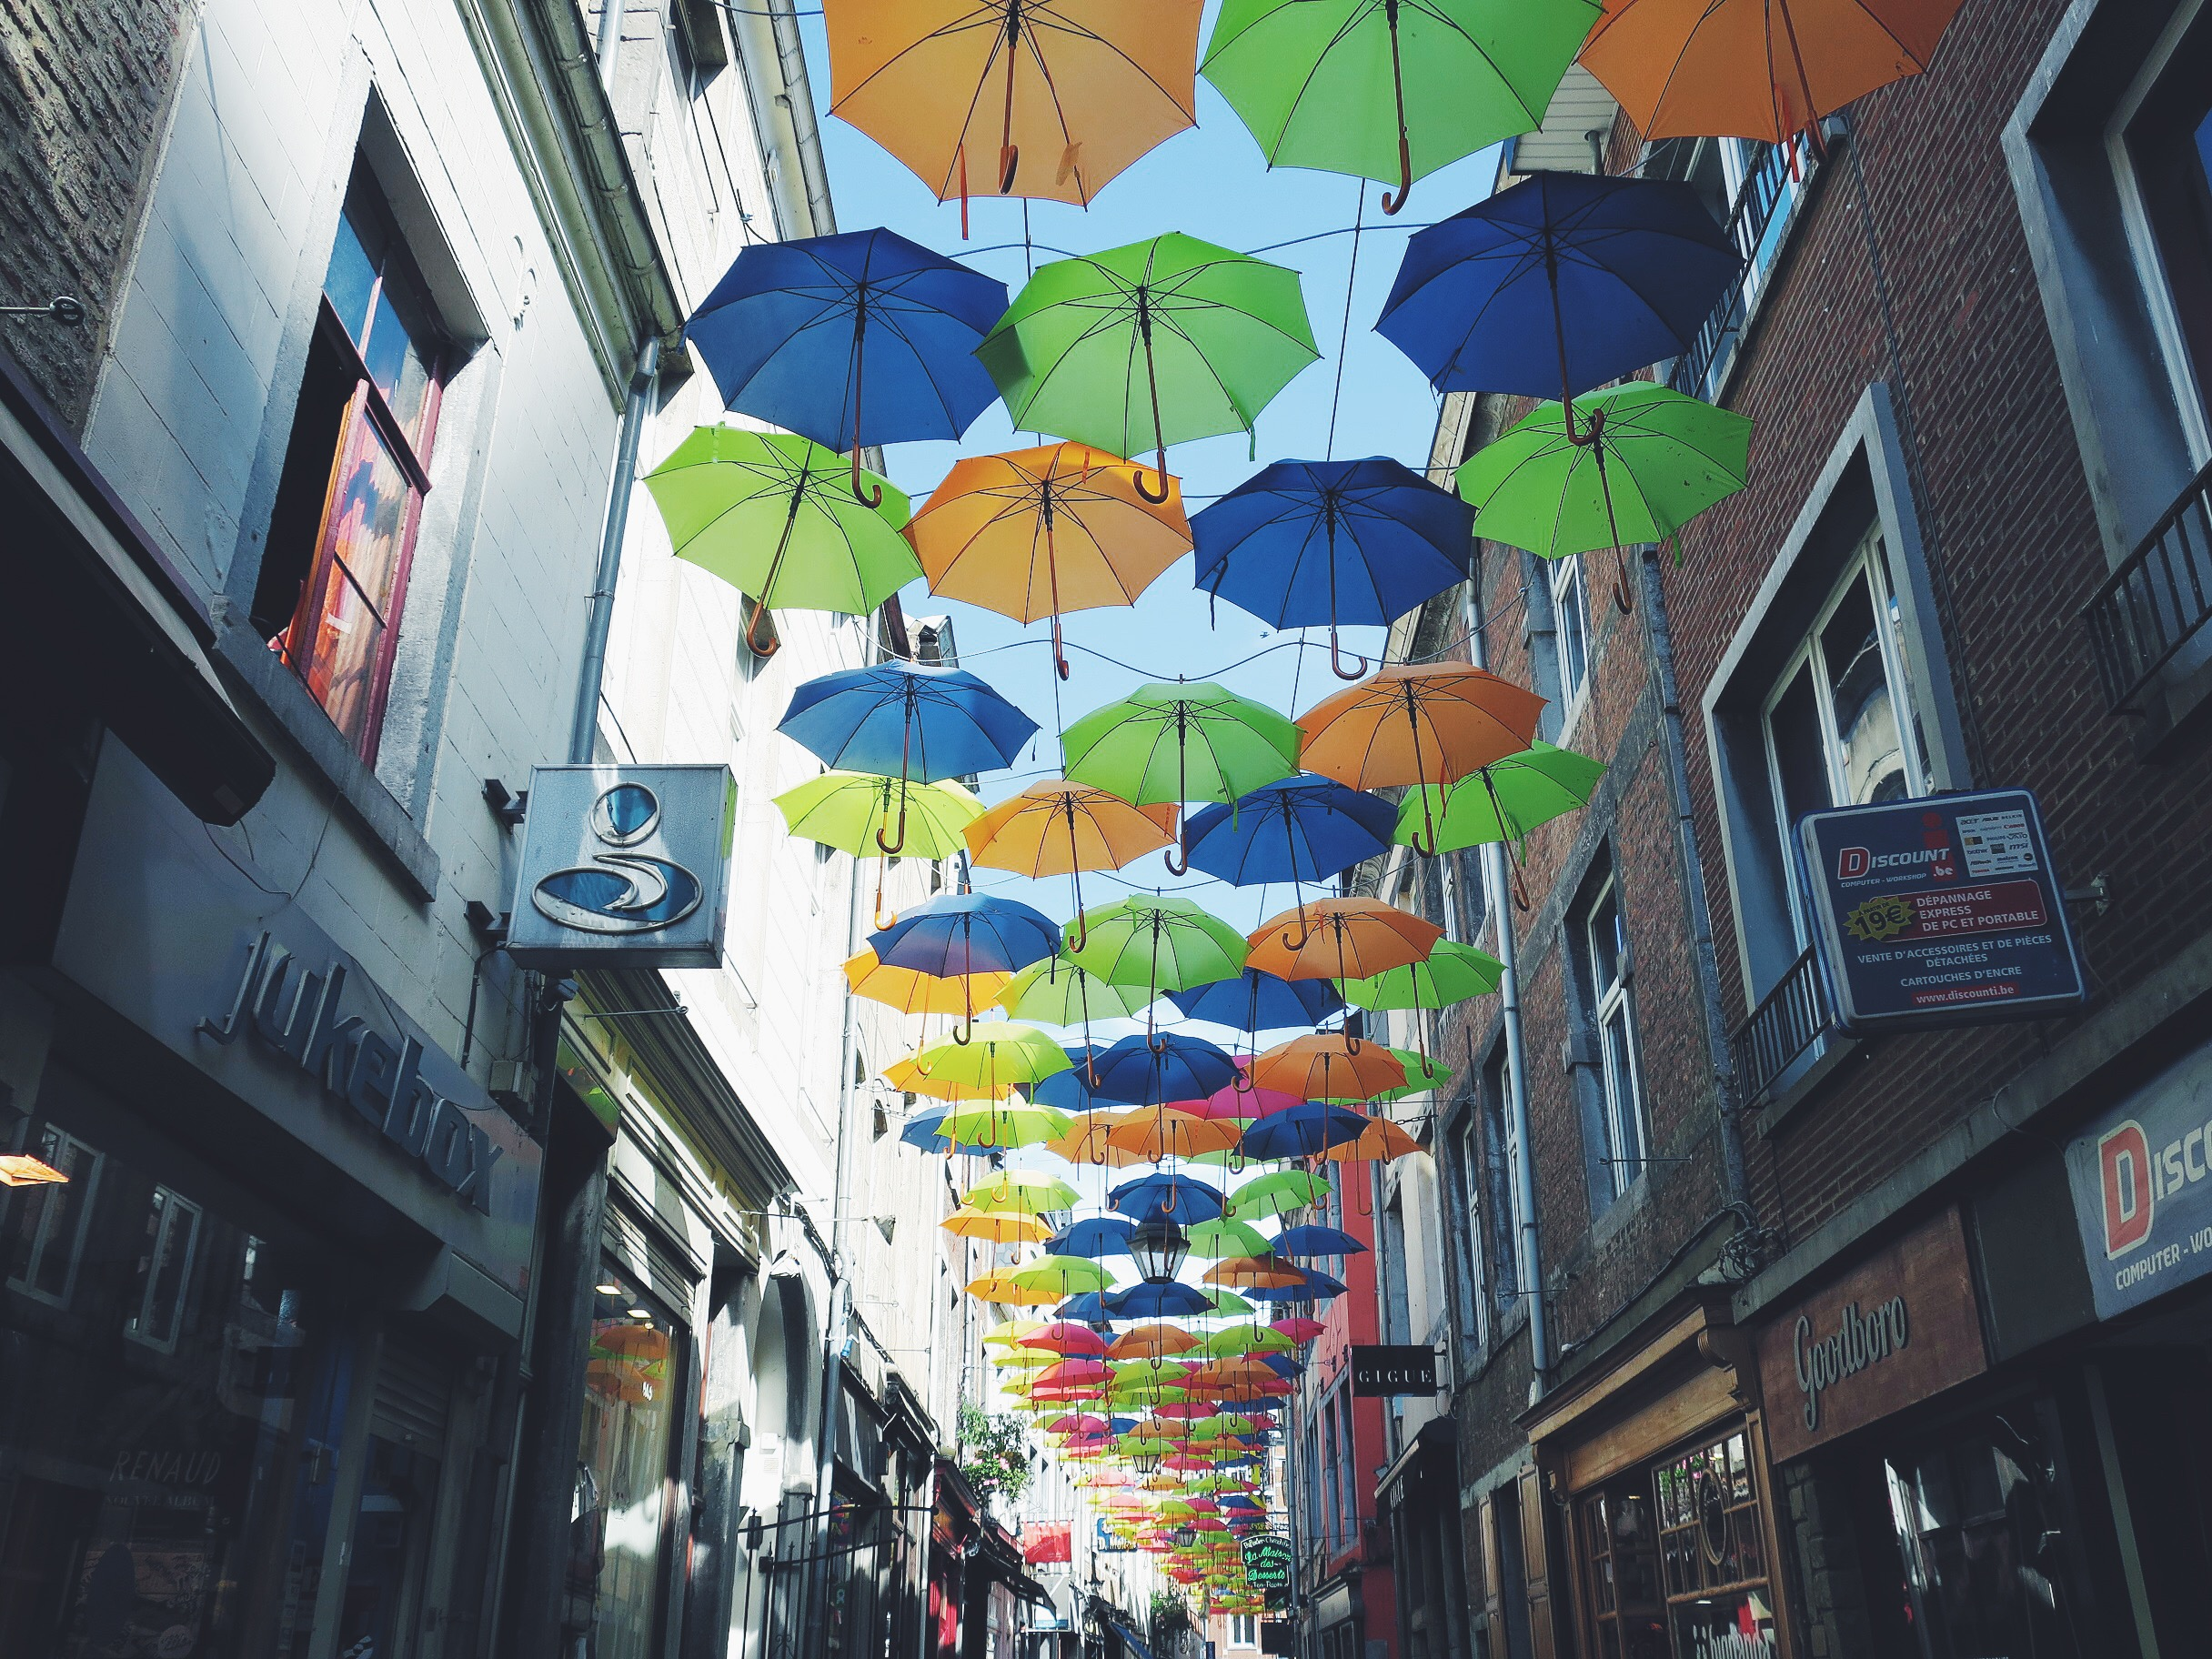 Umbrella Sky Project in the Rue Haute-Marcelle